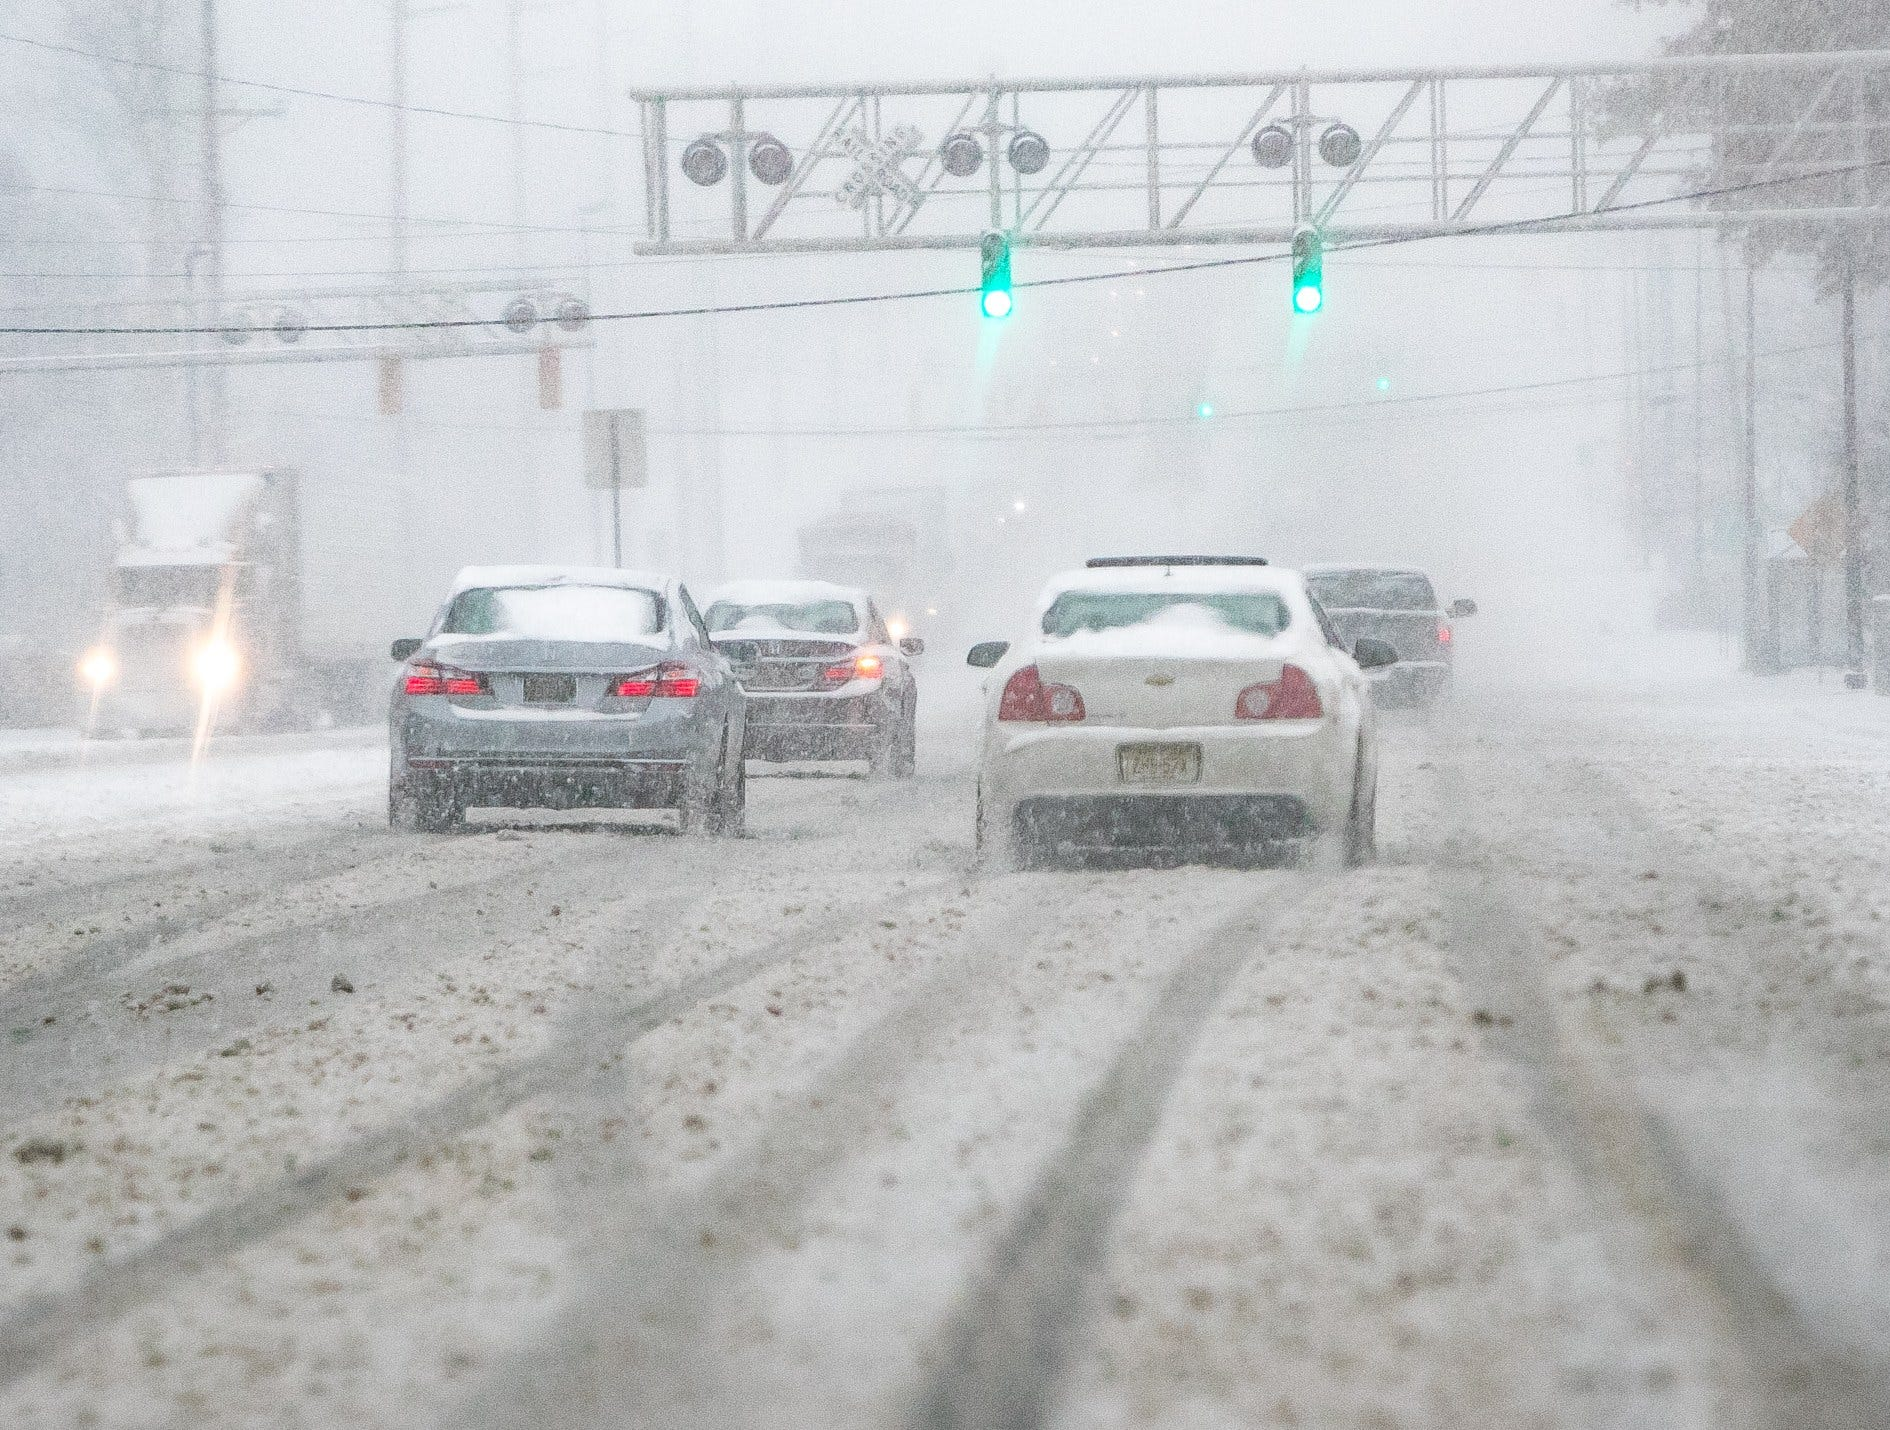 Climatologist: Forecast models underestimated cold temps, extent of snowfall in Delaware